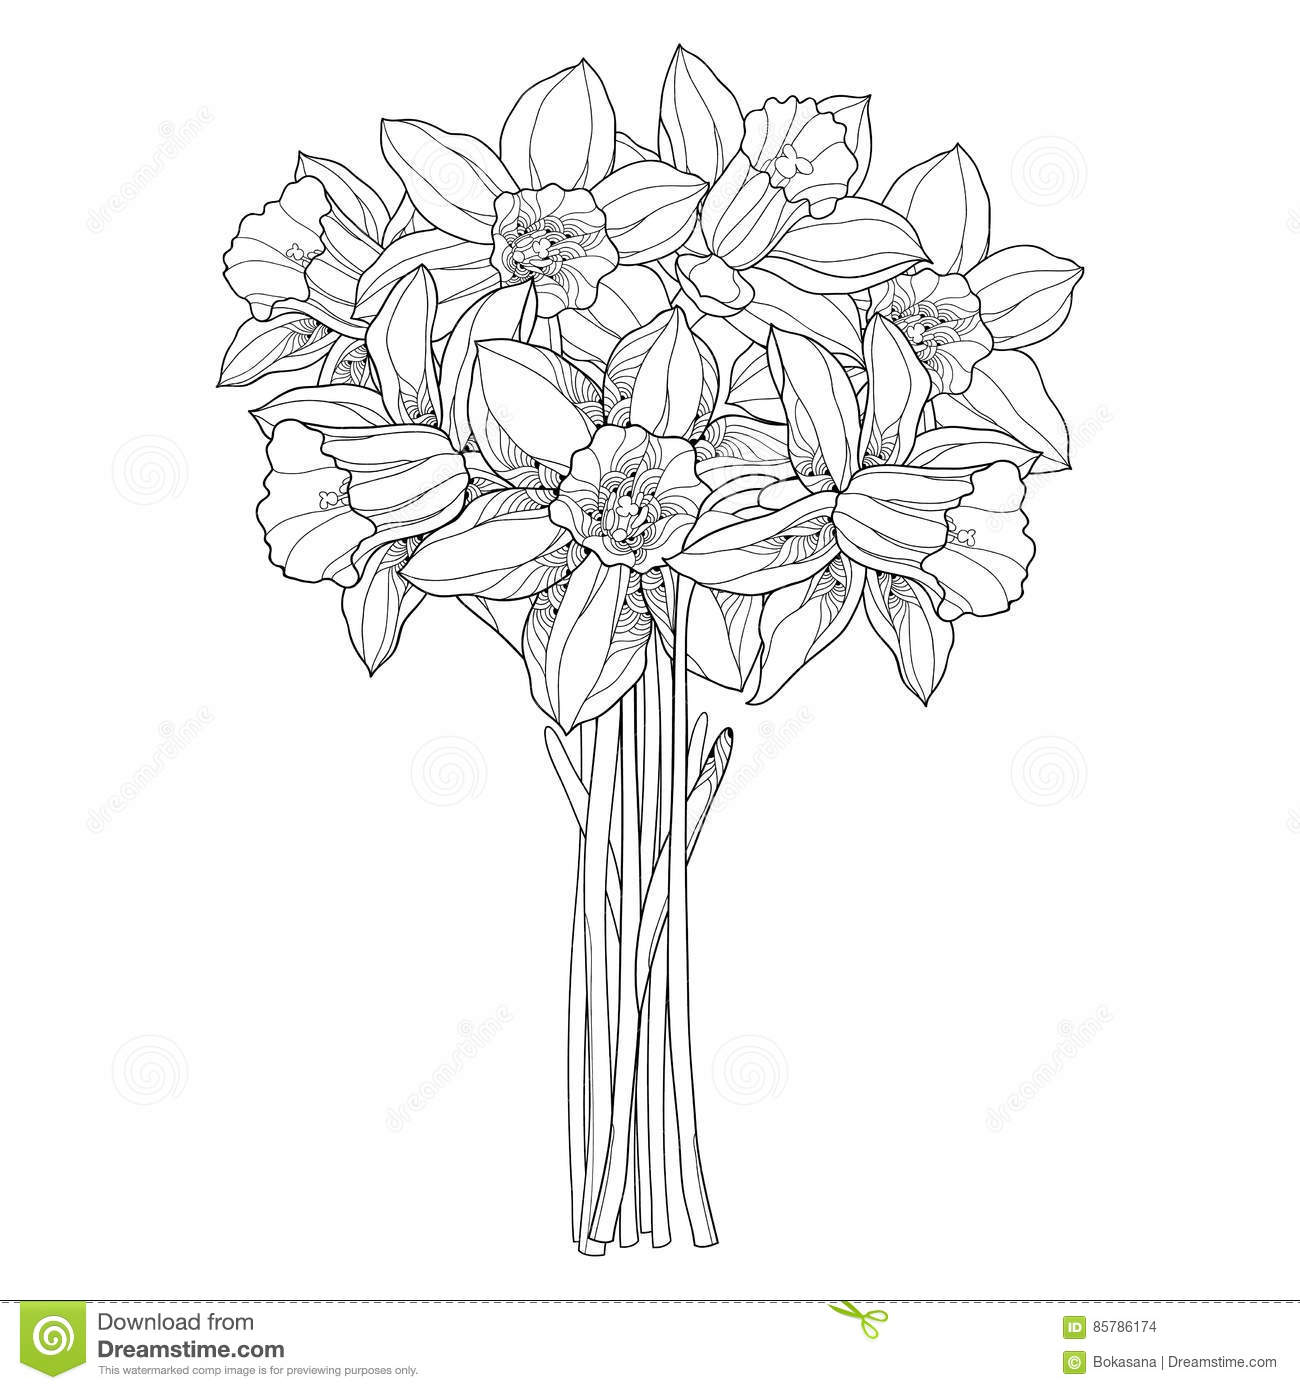 Vector bouquet with outline narcissus or daffodil flowers in black download vector bouquet with outline narcissus or daffodil flowers in black isolated on white ornate izmirmasajfo